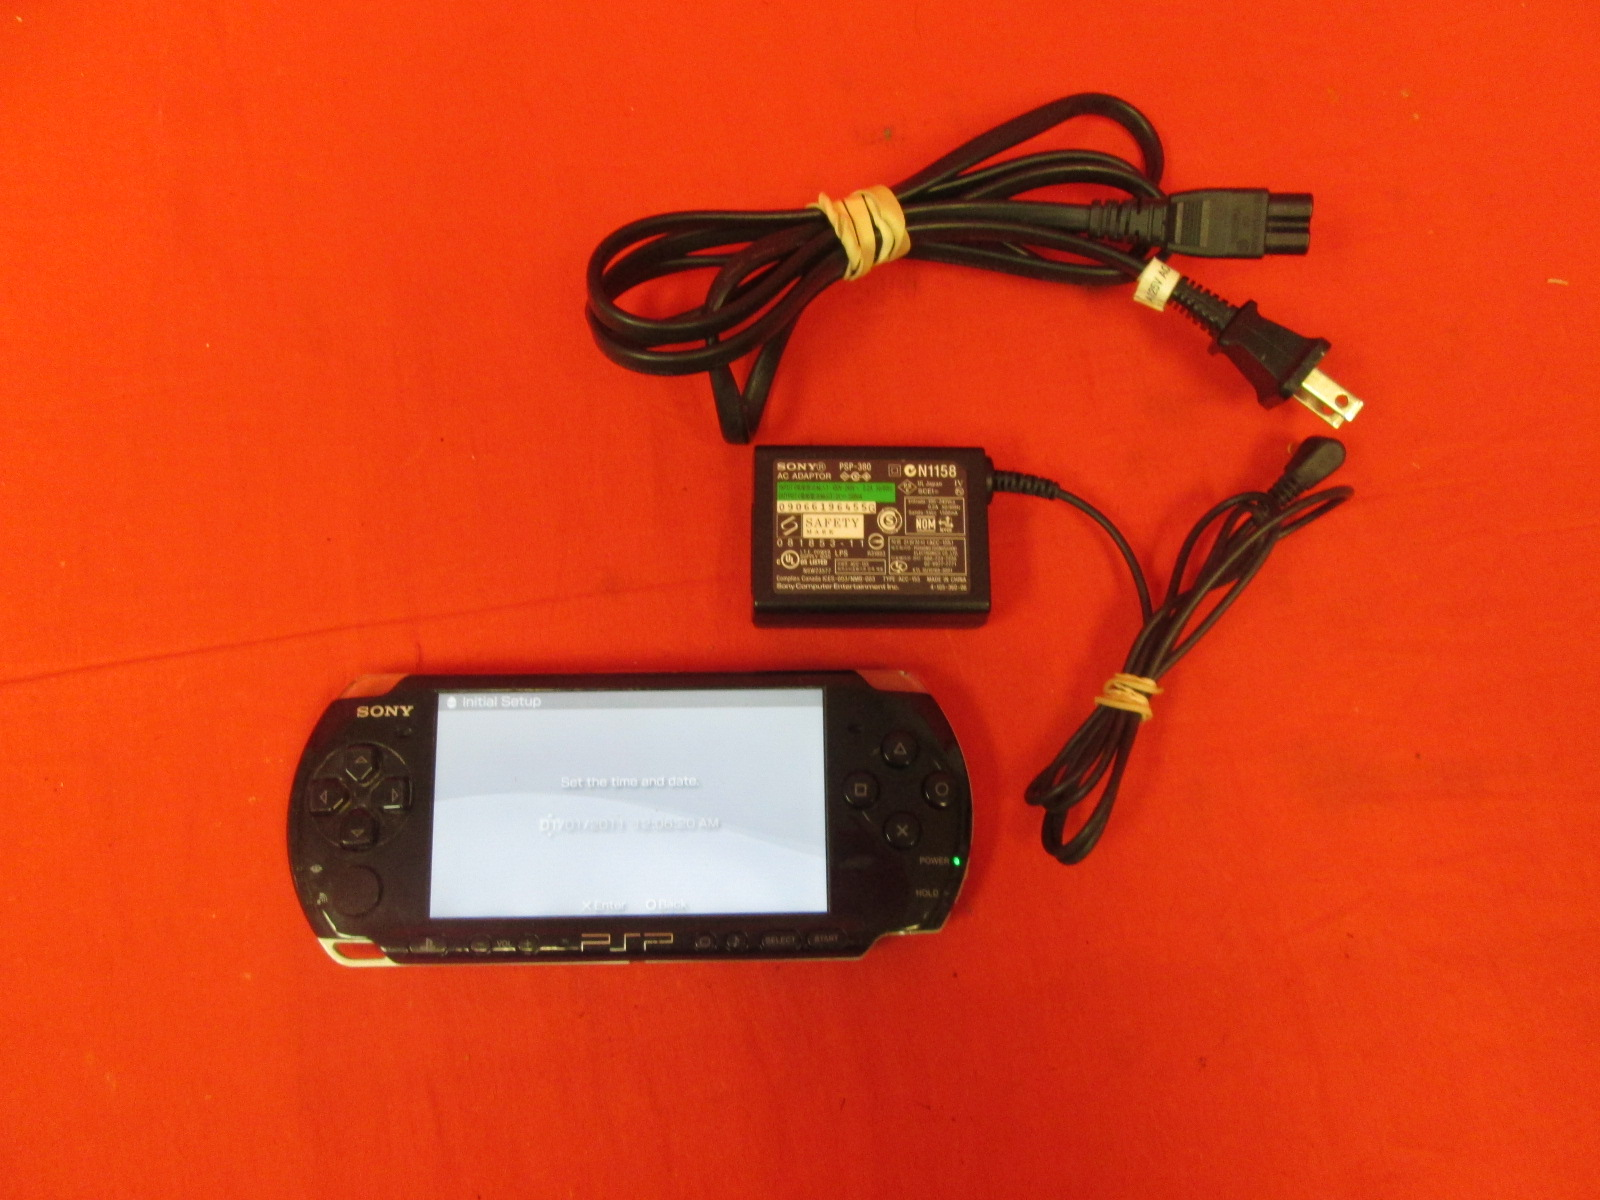 Sony PSP 1001 Handheld Portable Video Game System